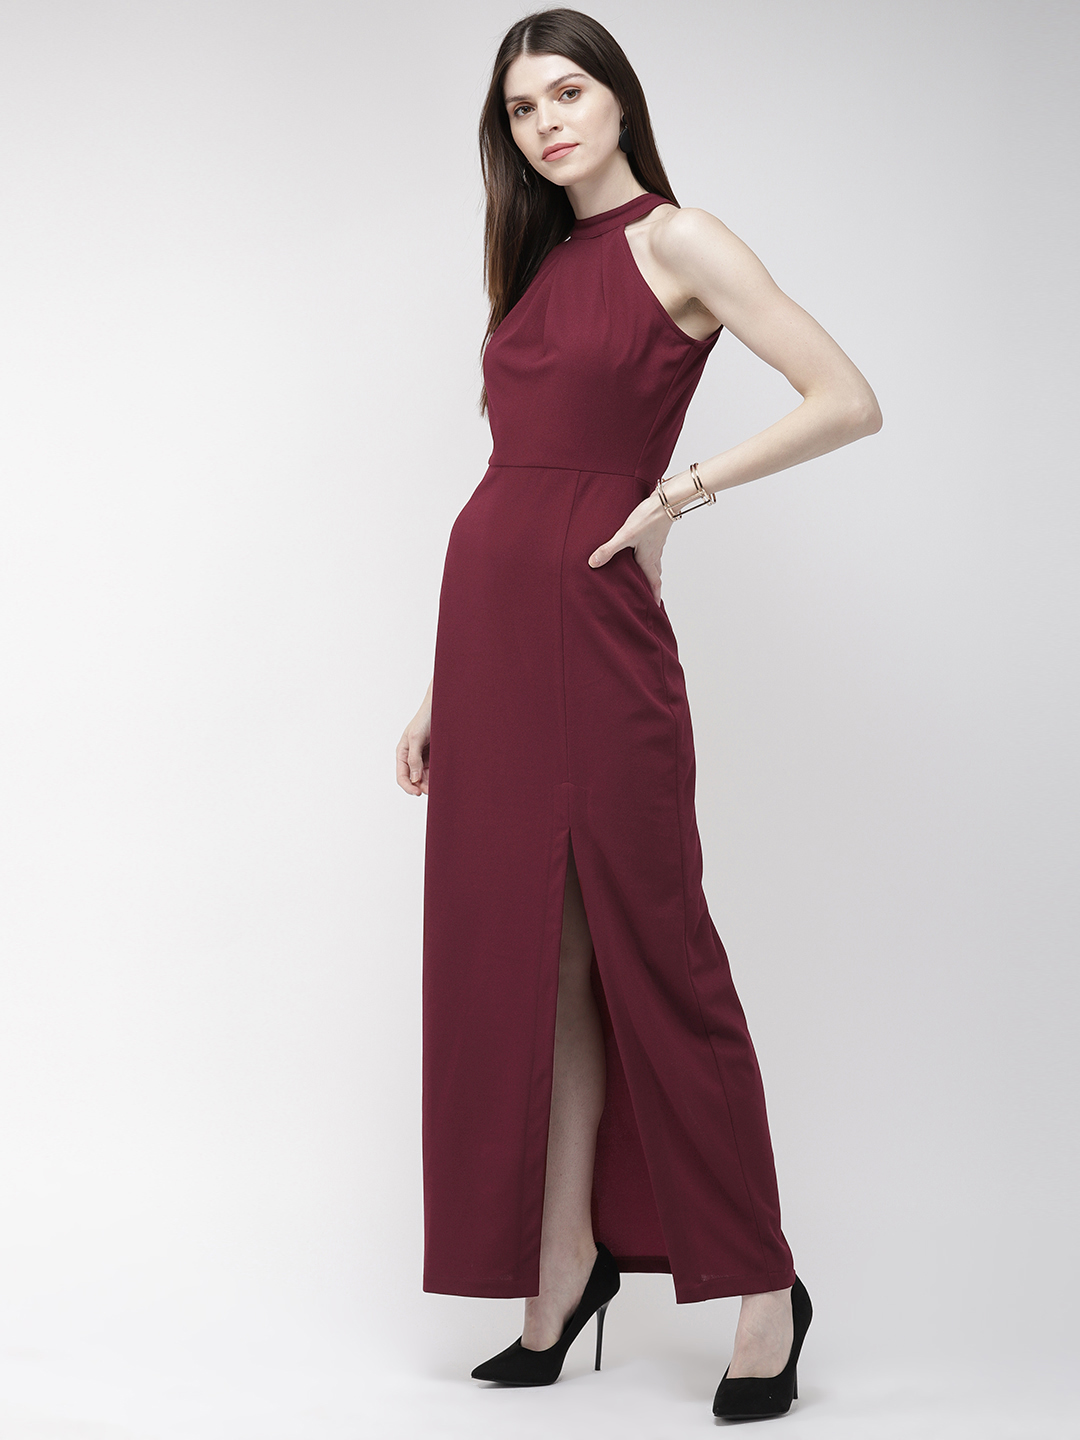 Dresses-You Are Still The One Slit Maxi Dress2